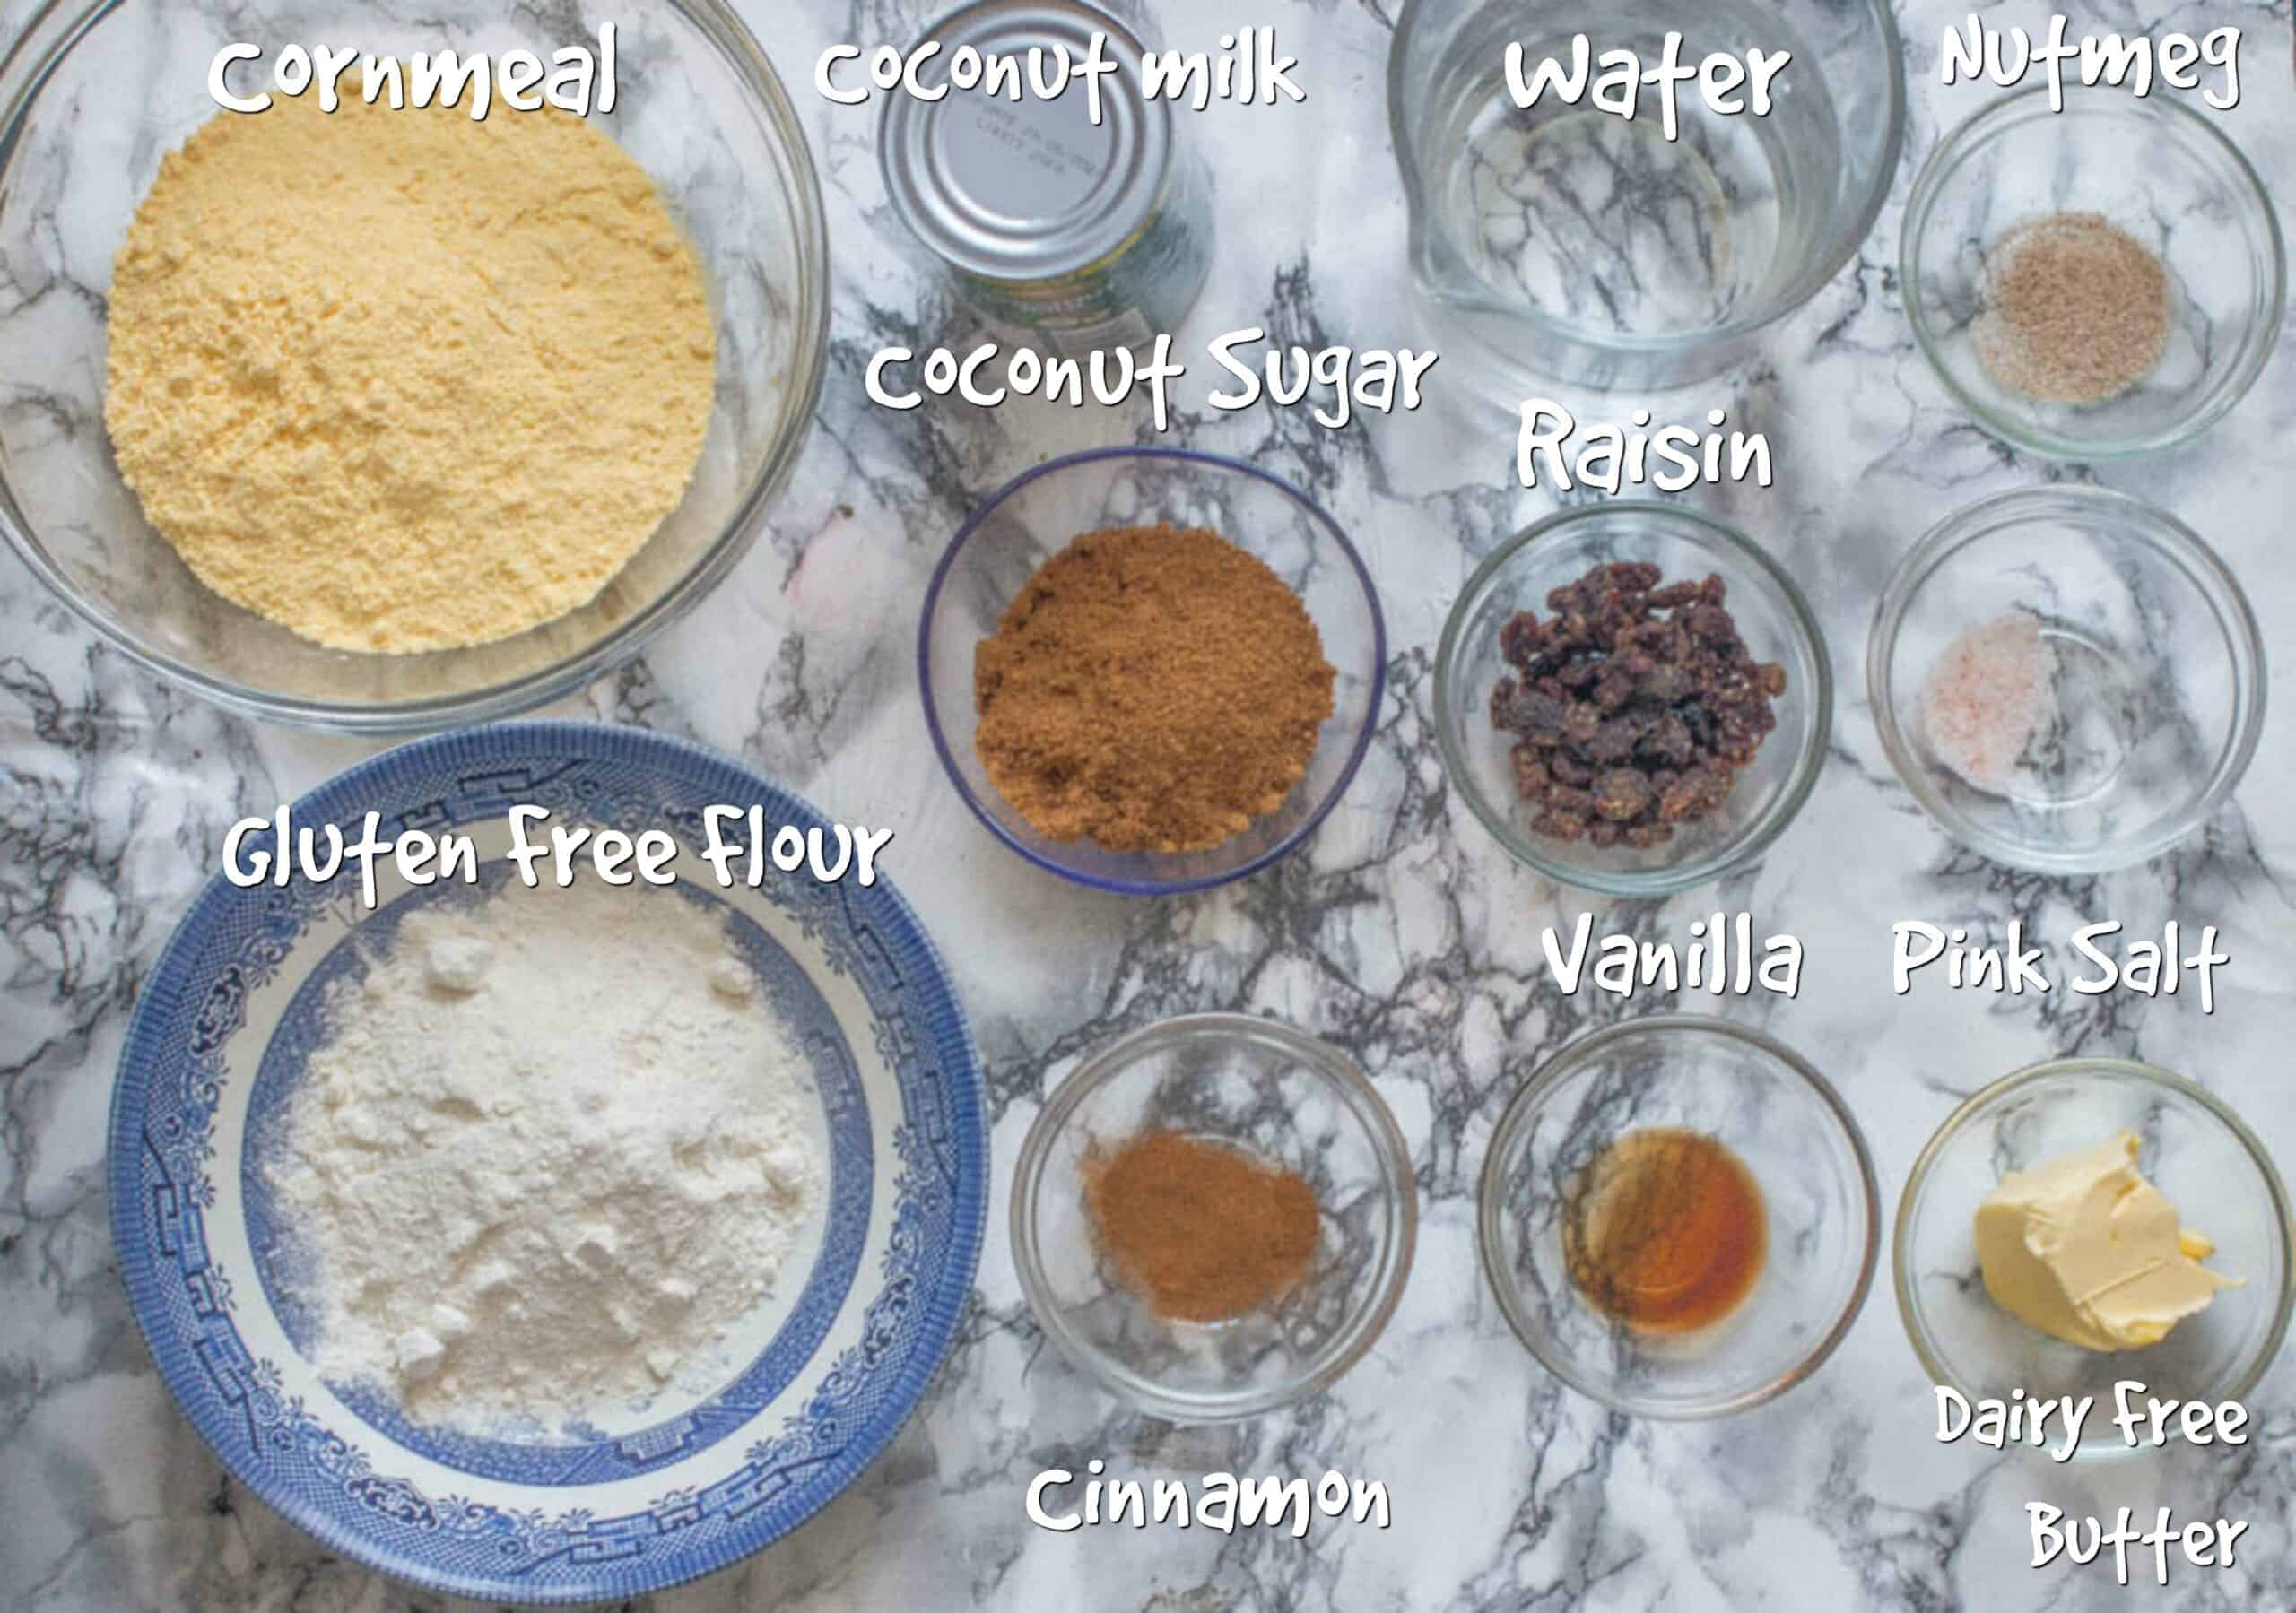 ingredients for the cornmeal pudding